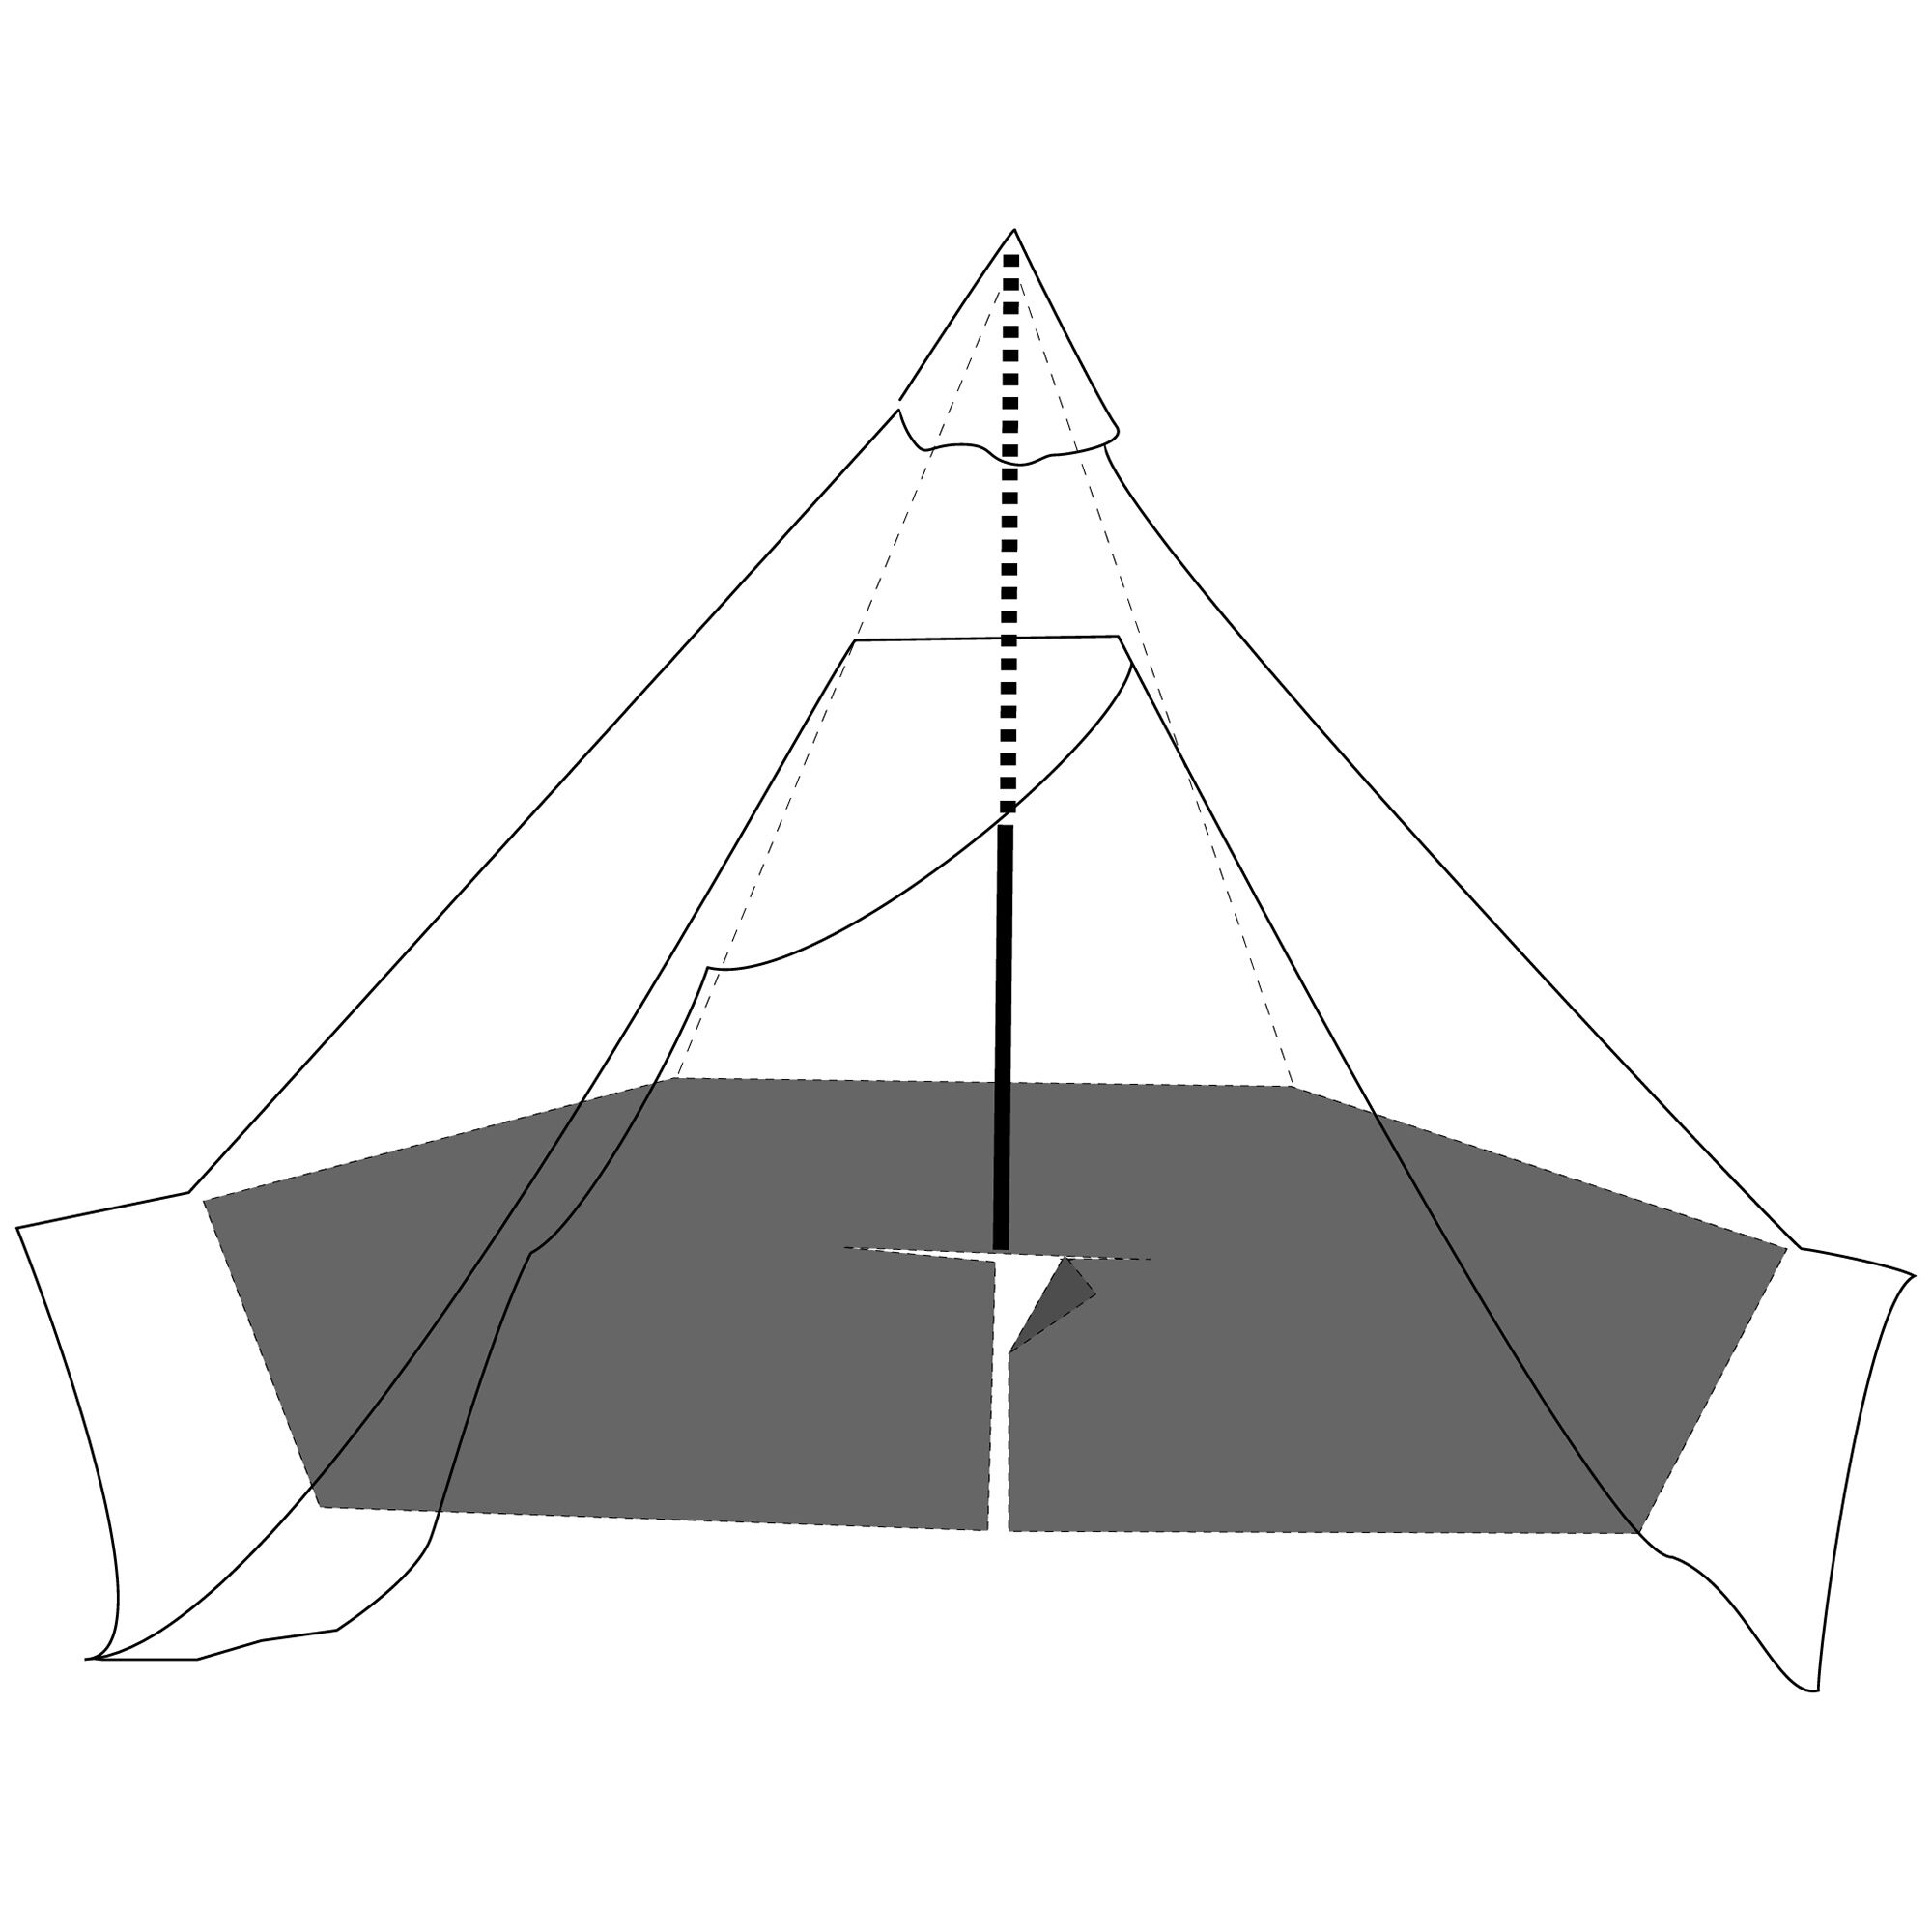 Pasvik 4 6 Outer Tent incl. Pole